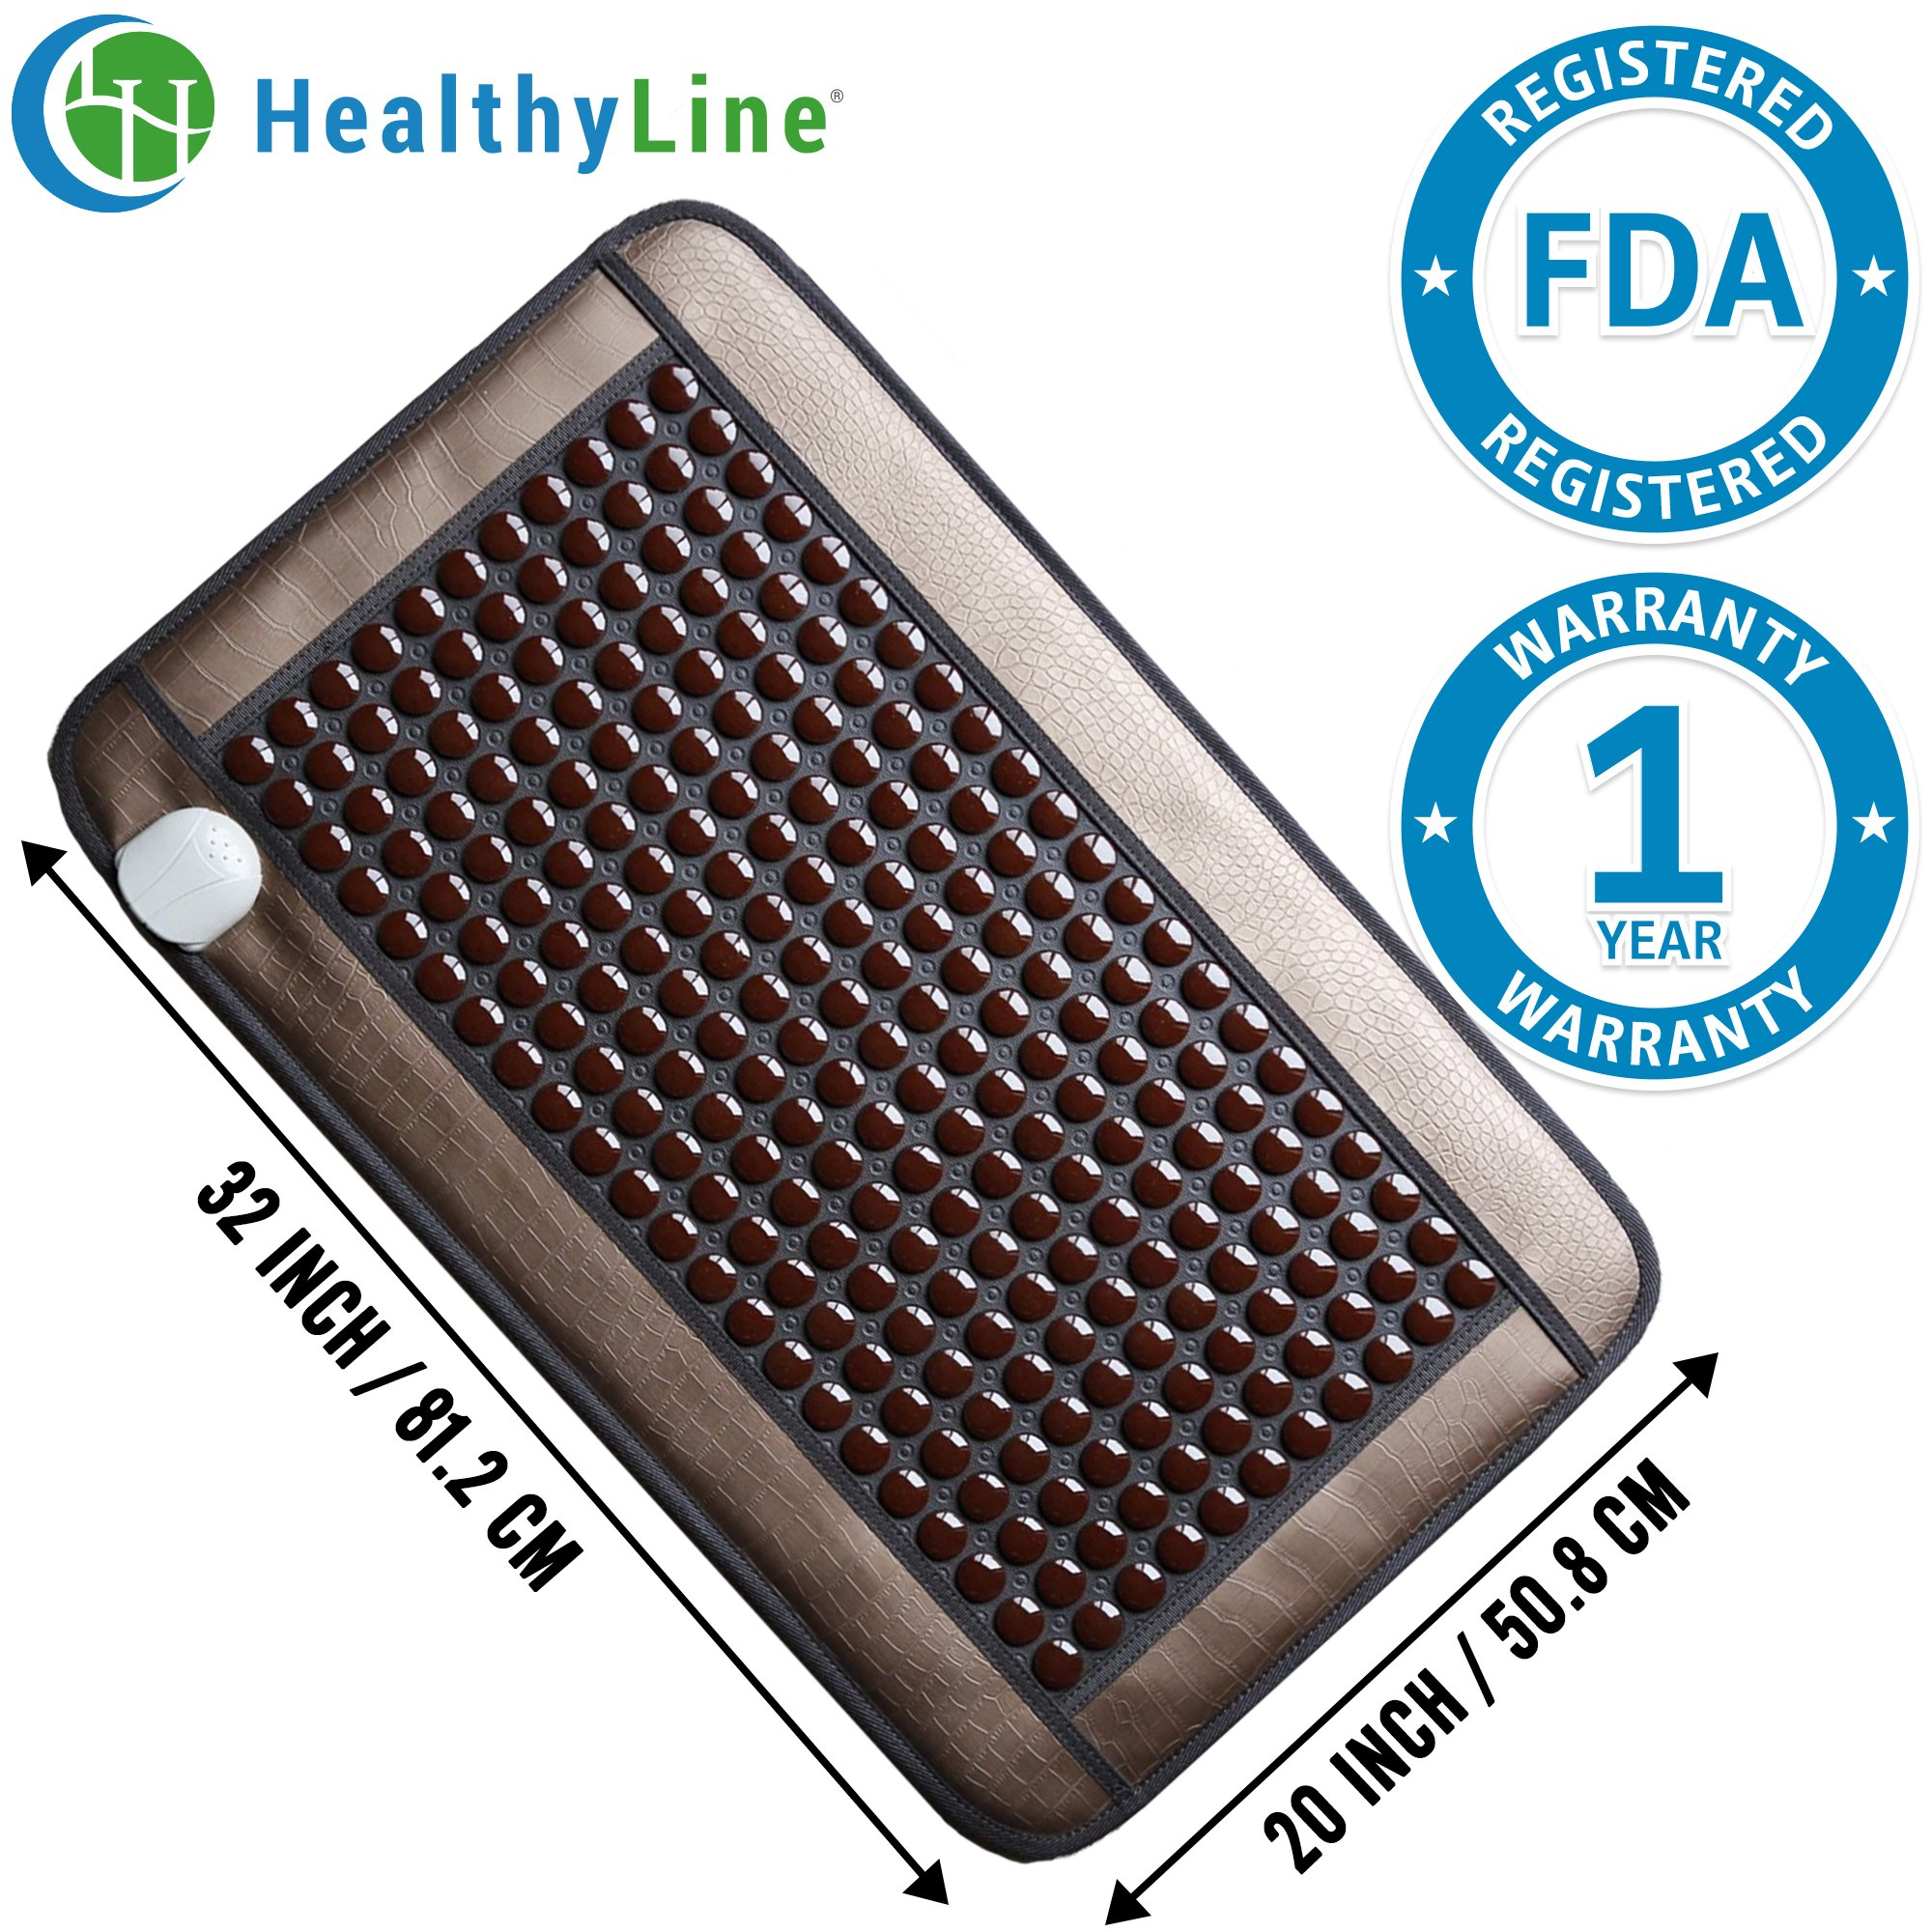 HealthyLine Far Infrared Heating Pad|Natural Tourmaline Healing Pad 32''x 20'' | Negative Ions Heating Pad (Medium & Firm) |Relieve Muscles, Joints, Nerves & Bones Pain | FDA Registered